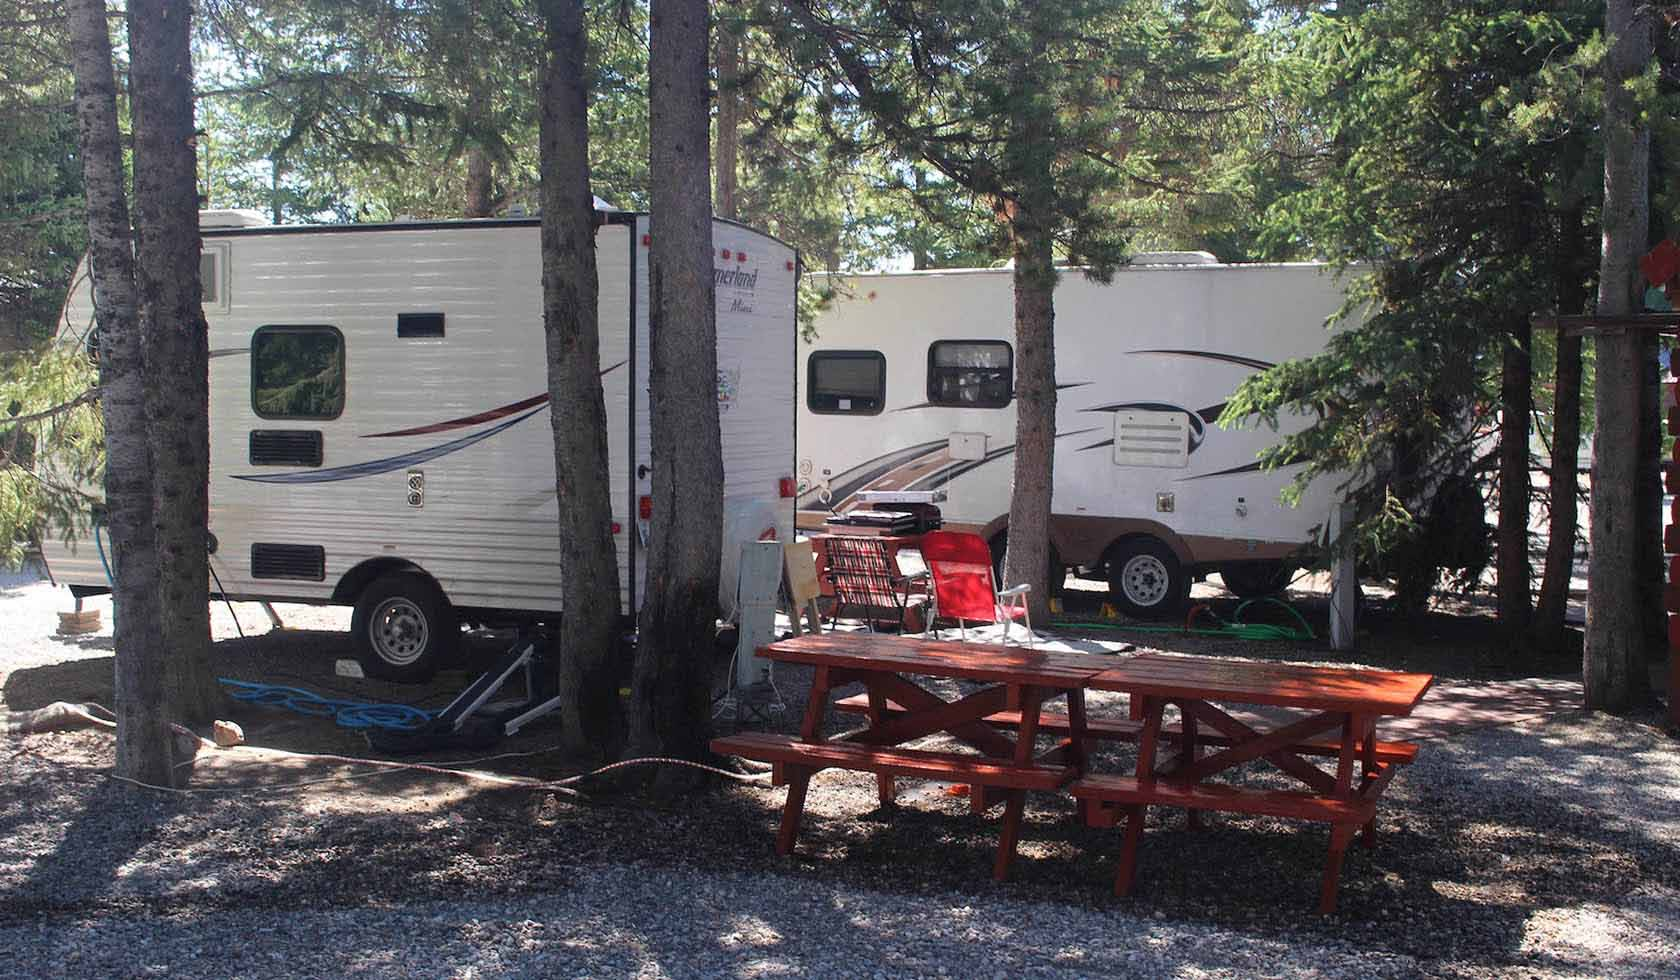 Wagon Wheel RV Campground & Cabins profile image